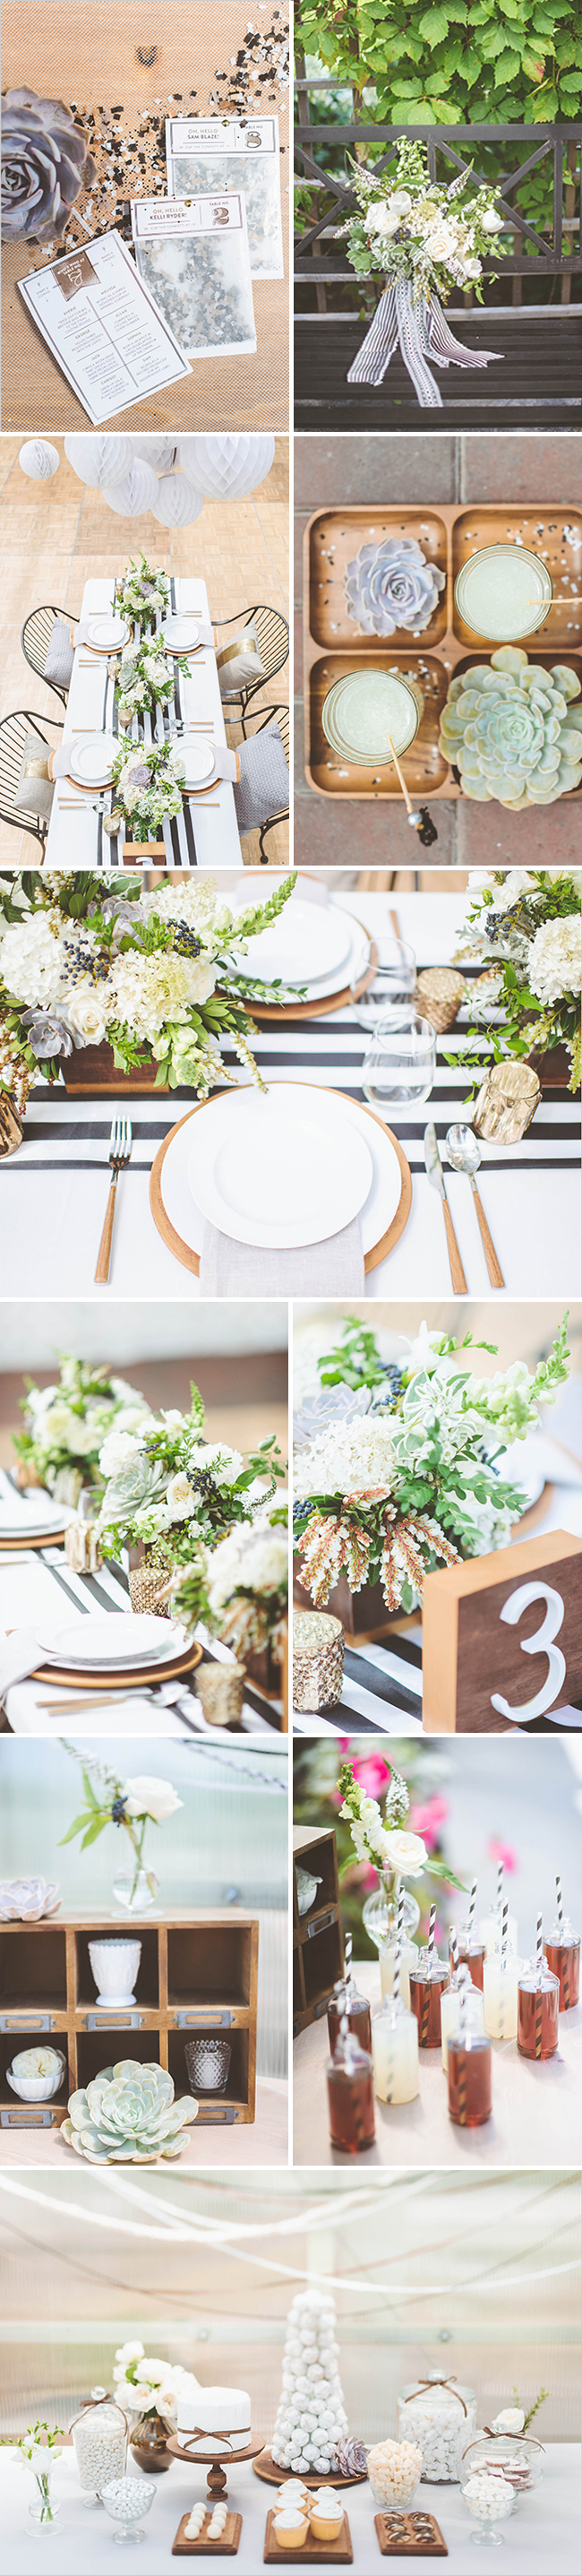 Rue's Birthday Bash! Event Styled by Confetti Pop - Floral design by Studio Fleurette with wholesale flowers by FiftyFlowers.com - Photos by Paper Antler